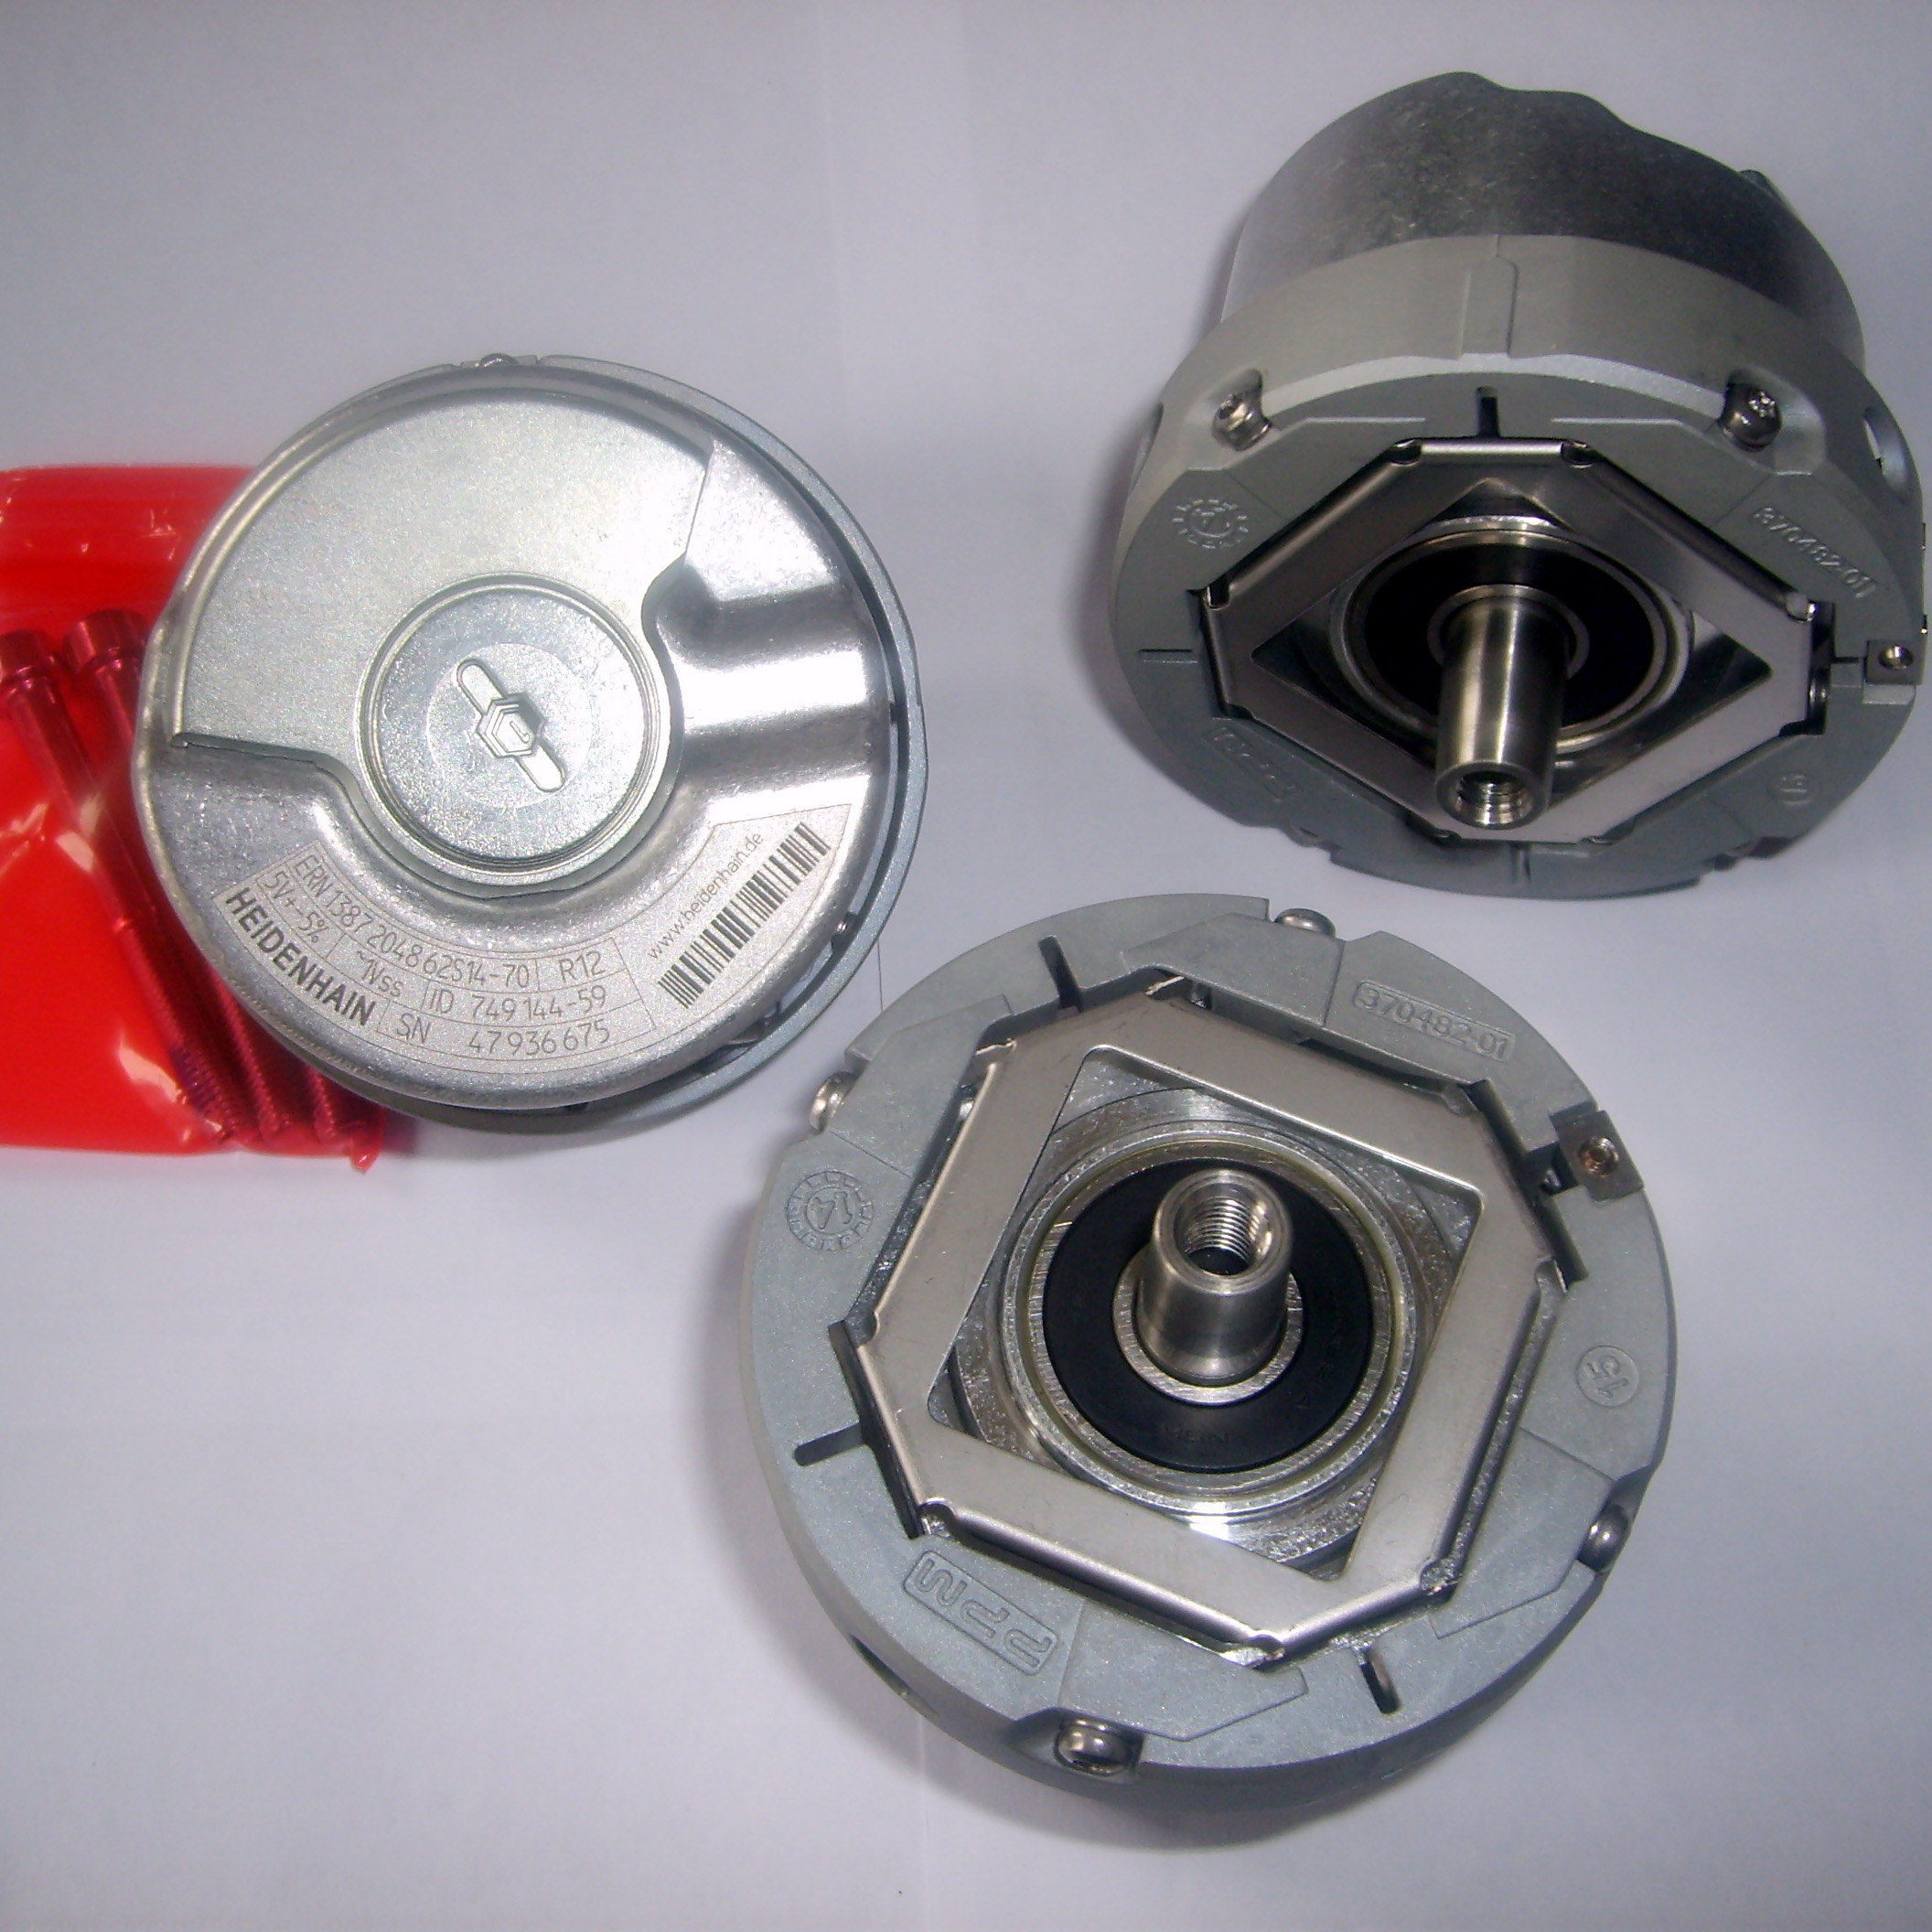 NEW ENCODER ECN 1313 2048 62S12-78 Rotary Encoder Resolver ECN1313204862S12-78 rotary encoder ose104 second hand looks like new tested working